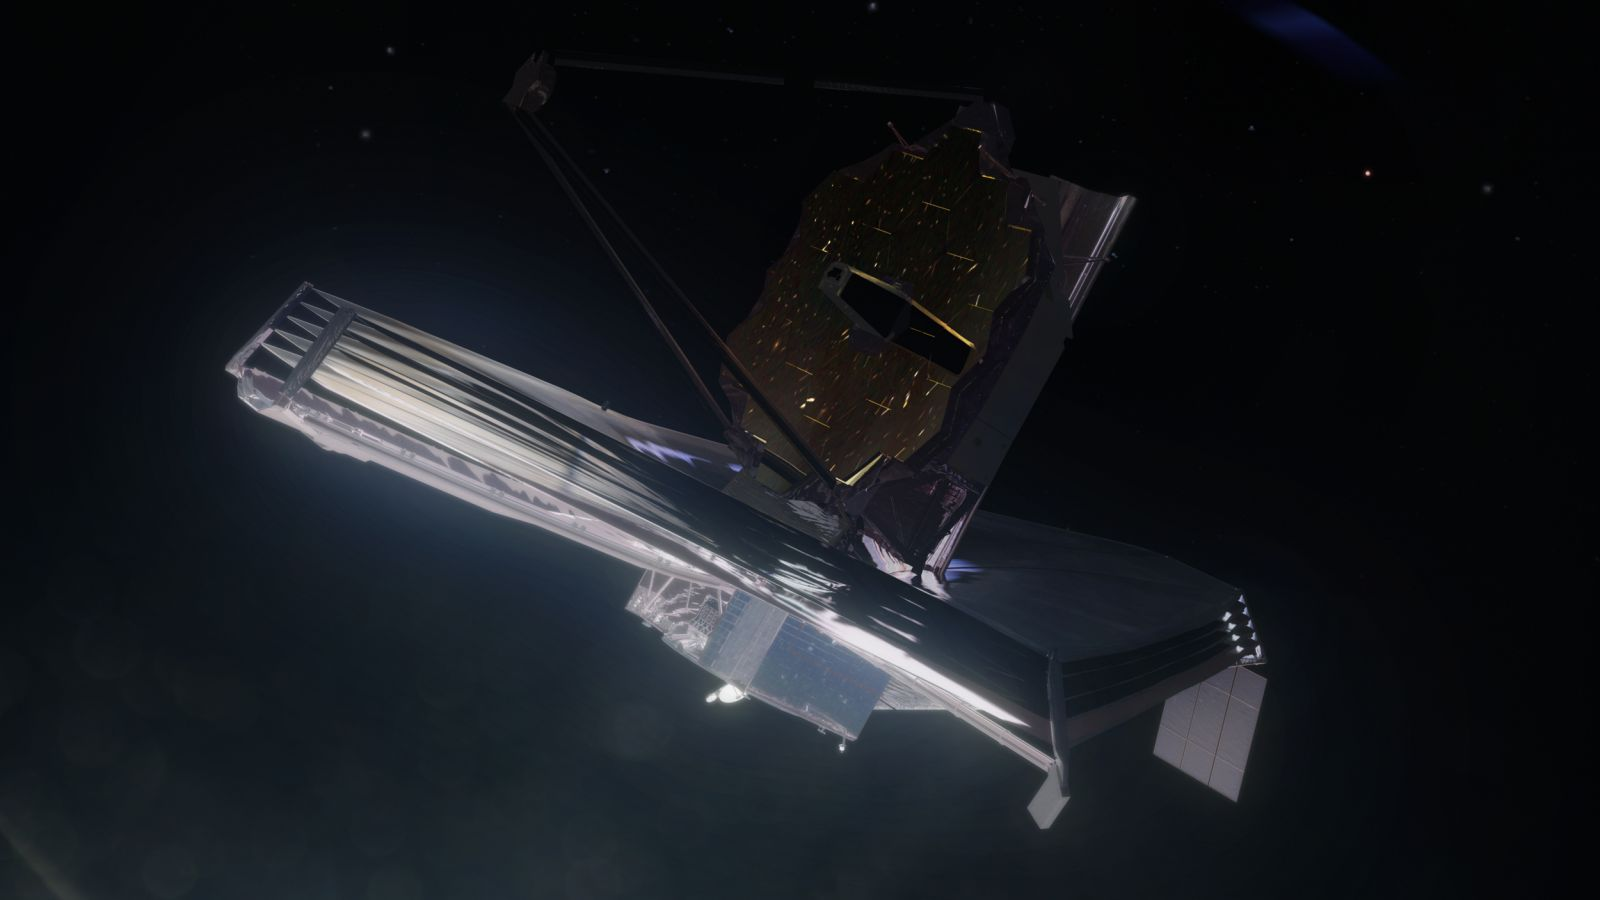 The James Webb Space Telescoped is scheduled to launch in 2019. Image Source: Nathan Koga / SpaceFlight Insider